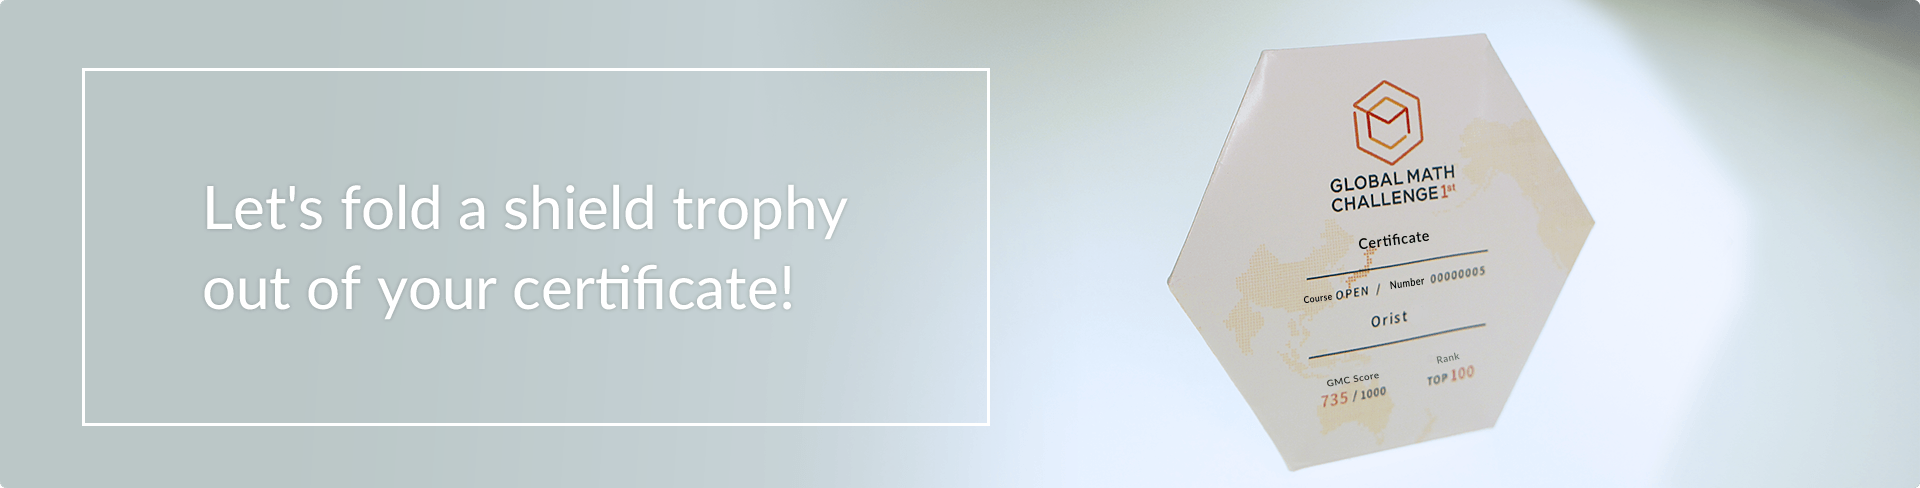 Lets fold a shield trophy out of your certificate!